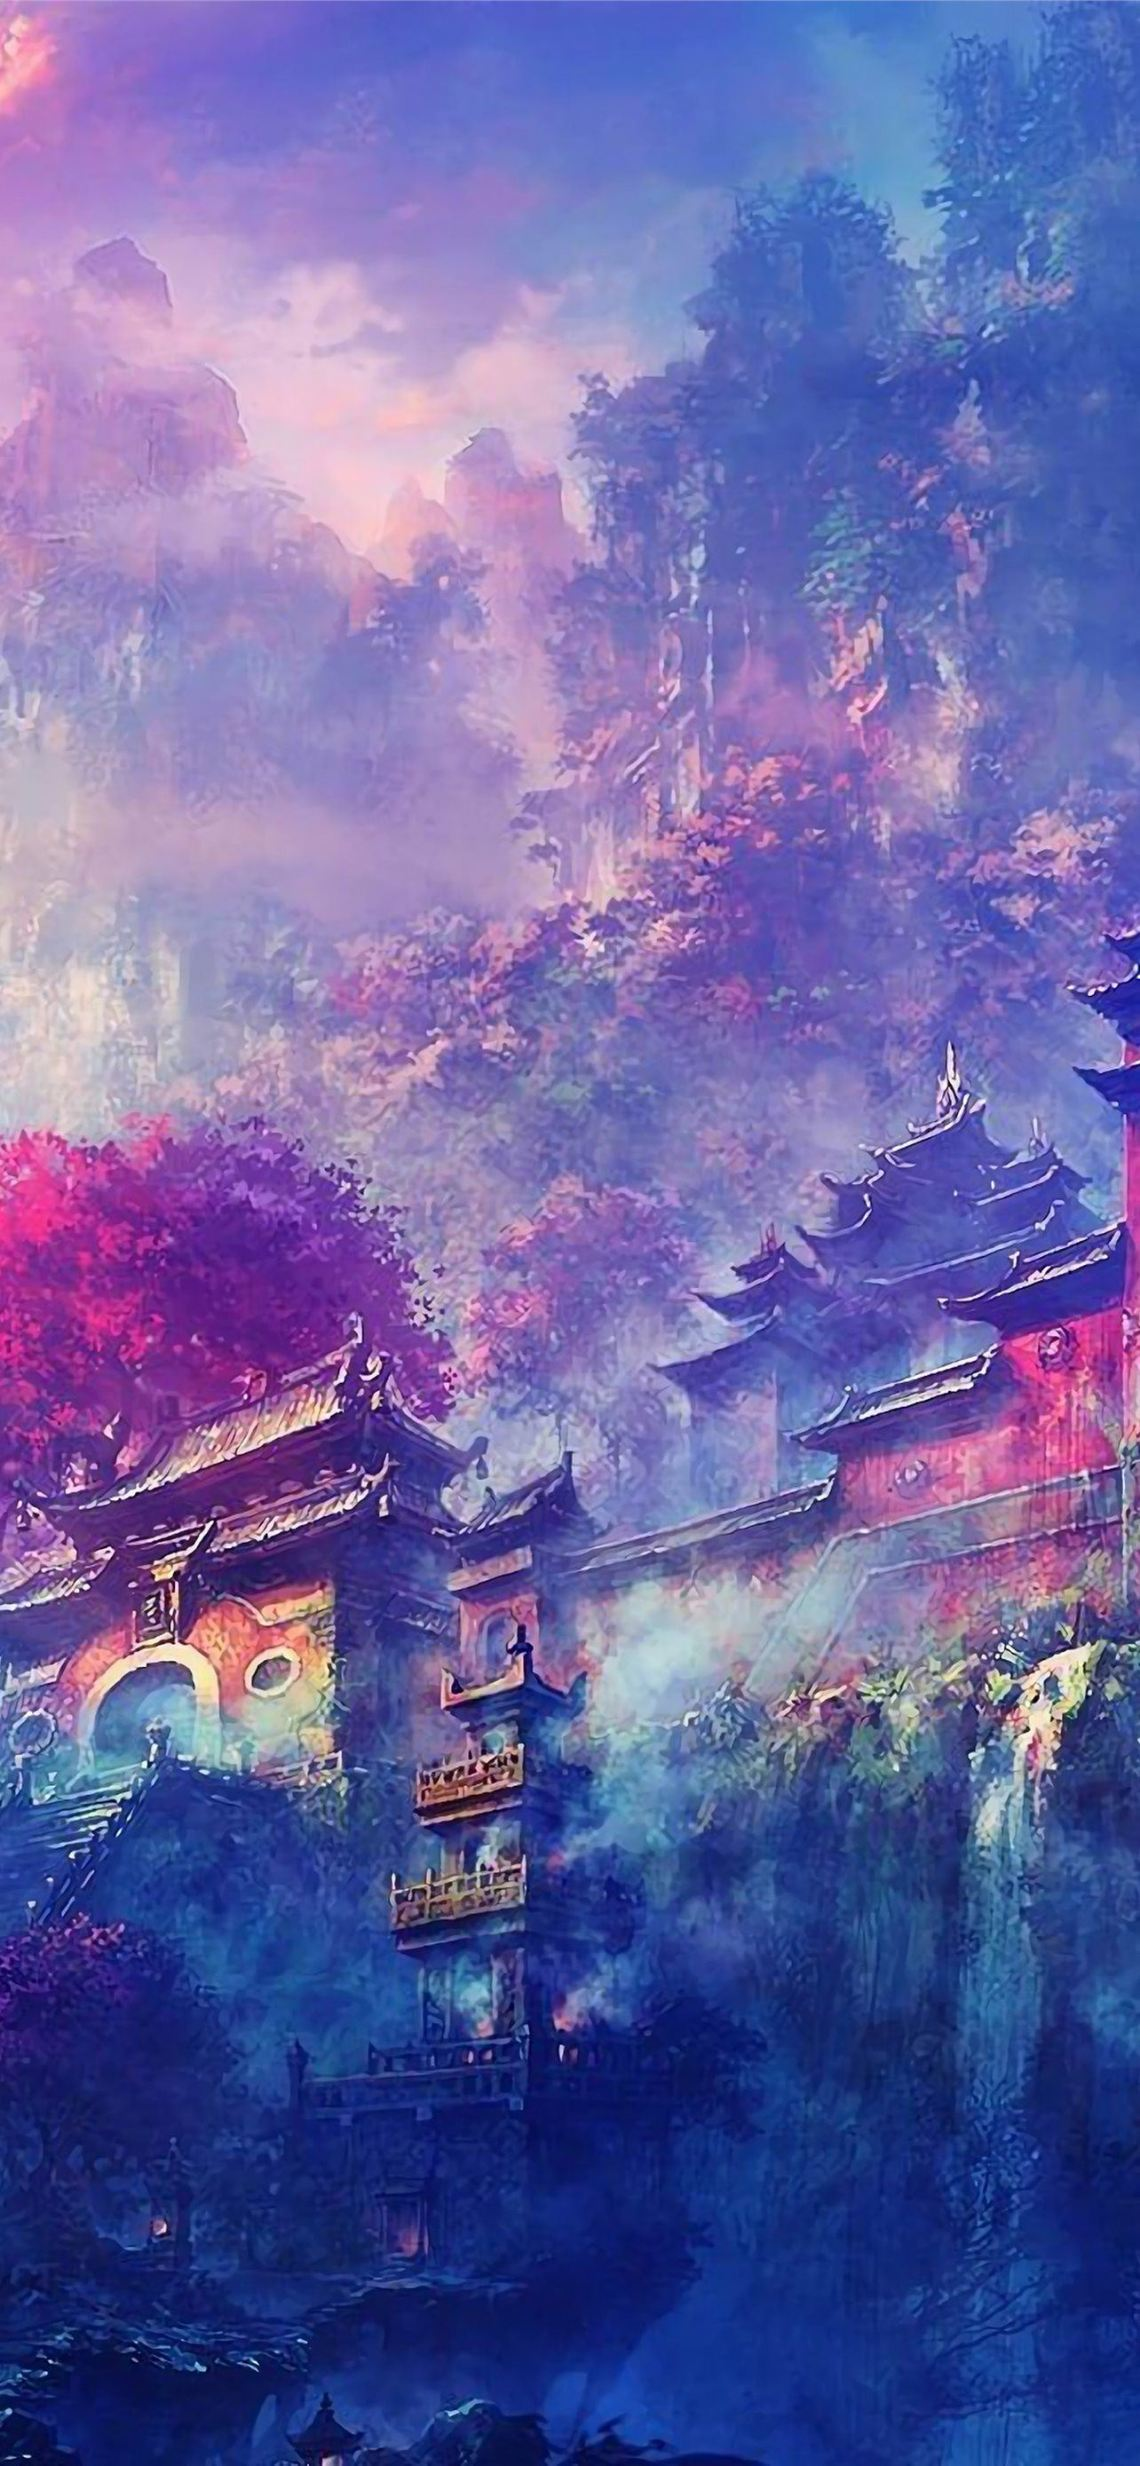 Buddha Oriental Castle Scenery Anime 4k Iphone Wallpapers Free Download